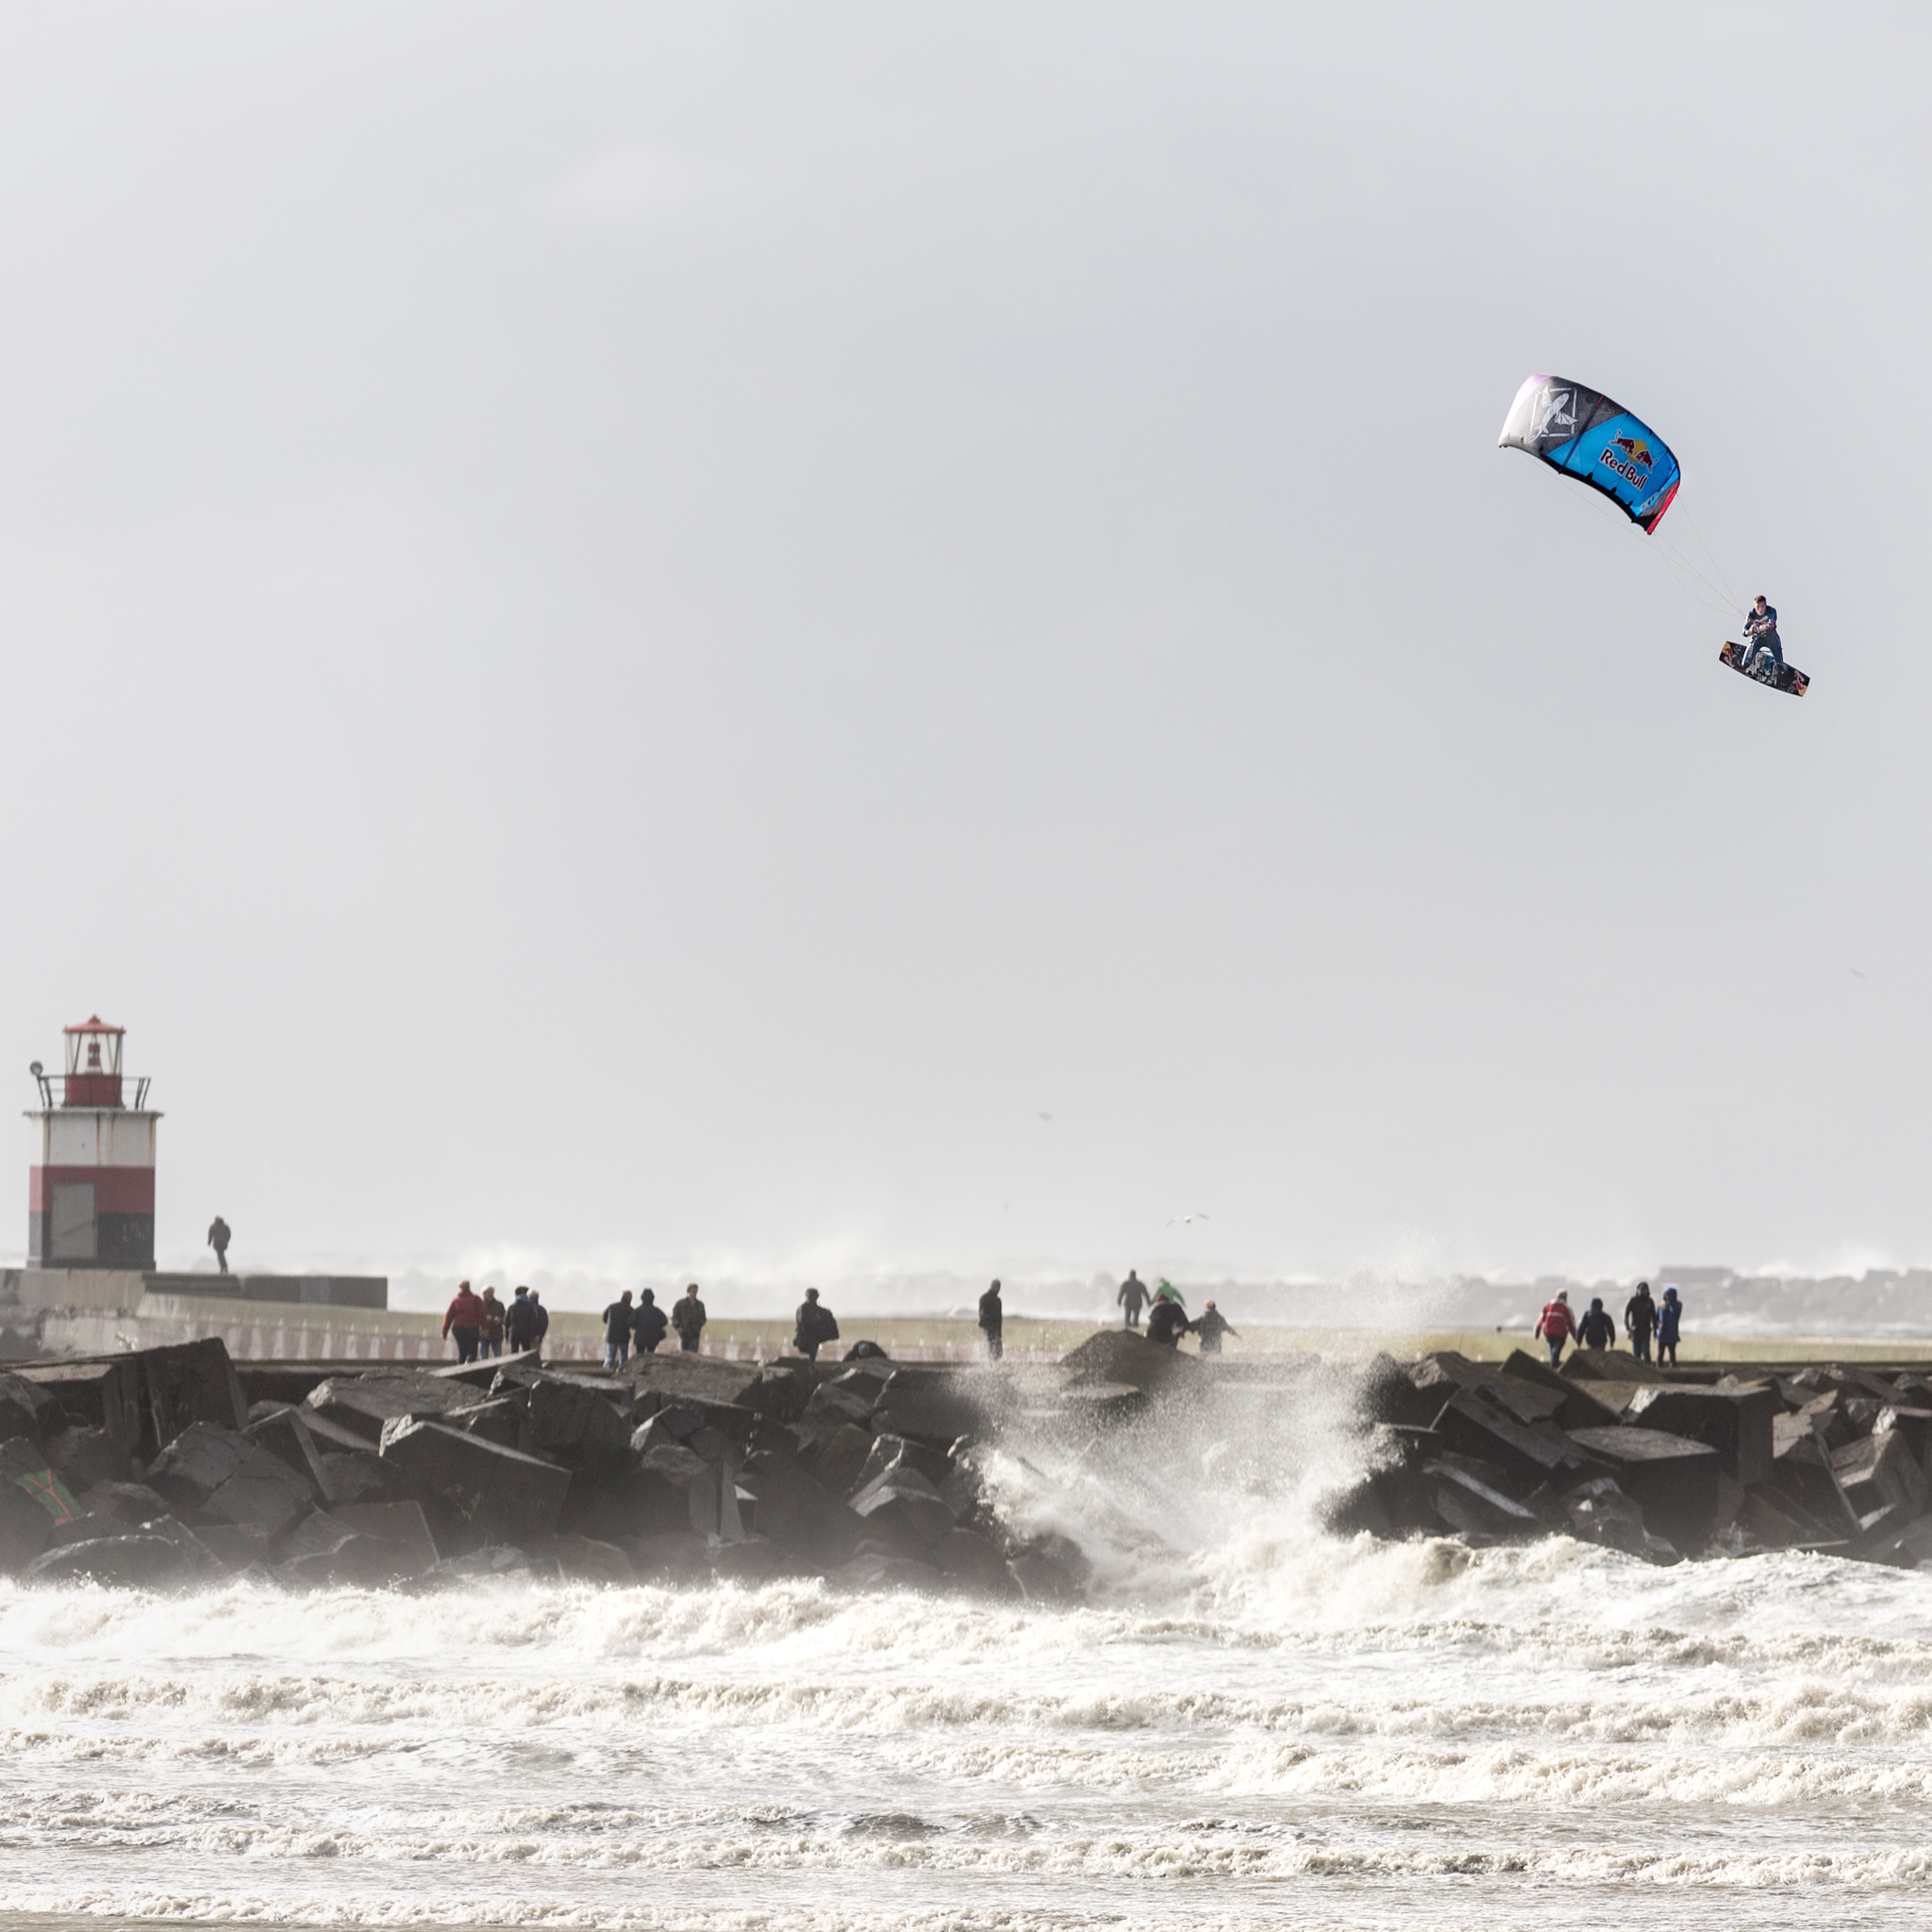 kitesurf wallpaper image - Ruben Lenten stormchasing at Wijk aan Zee megaloop - in resolution: iPad 2 & 3 2048 X 2048